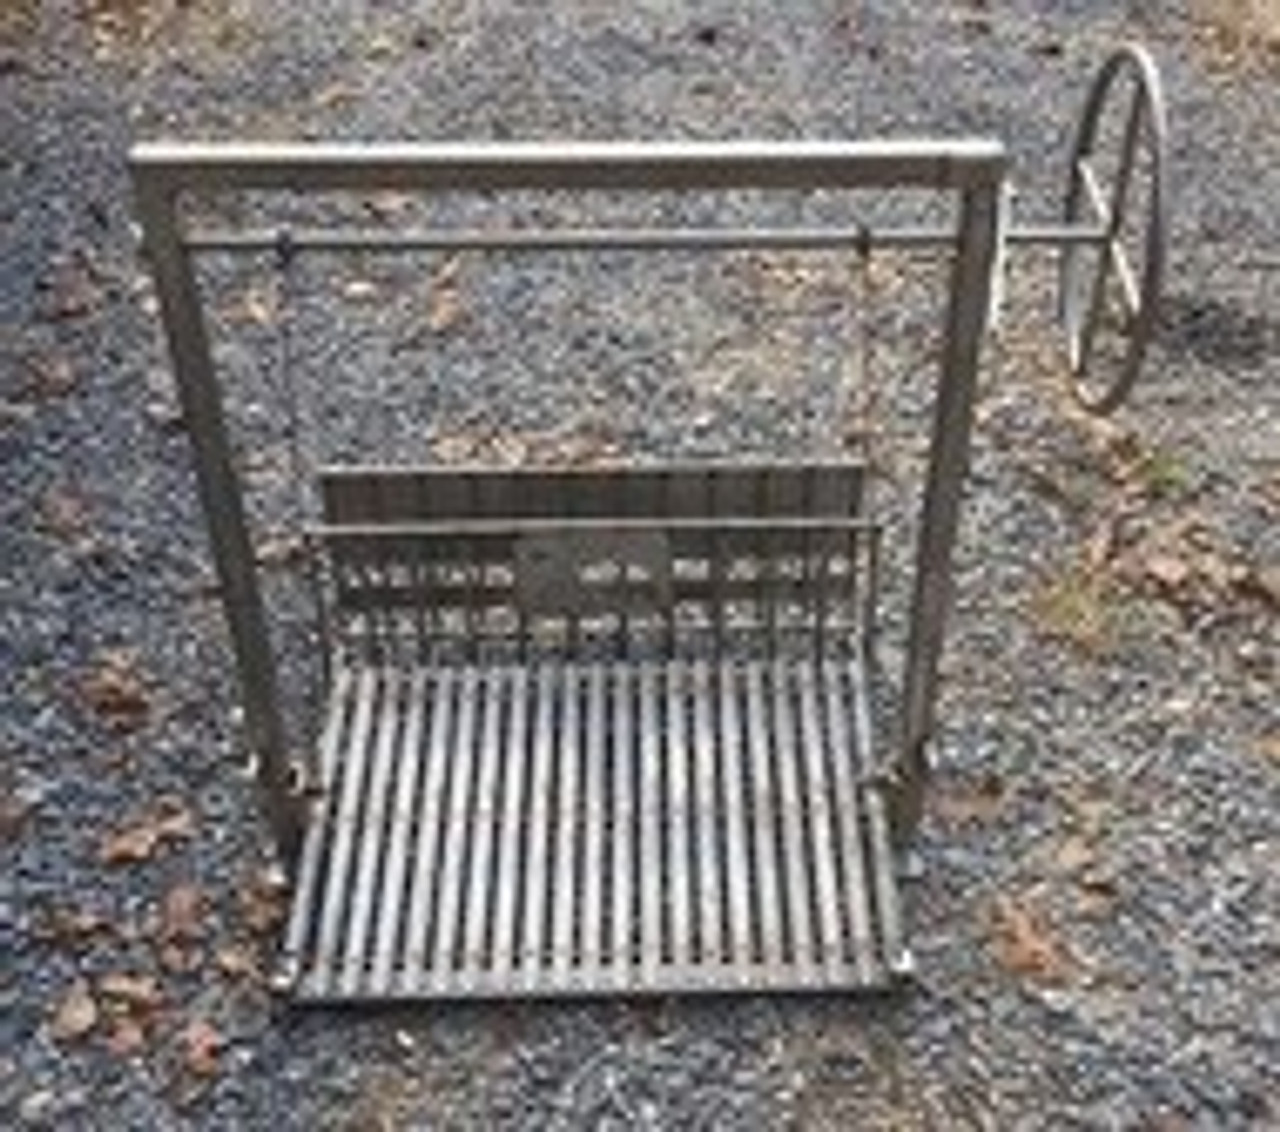 Stainless Steel Argentine Masonry Grill Kits with Rear Brasero and No Flange